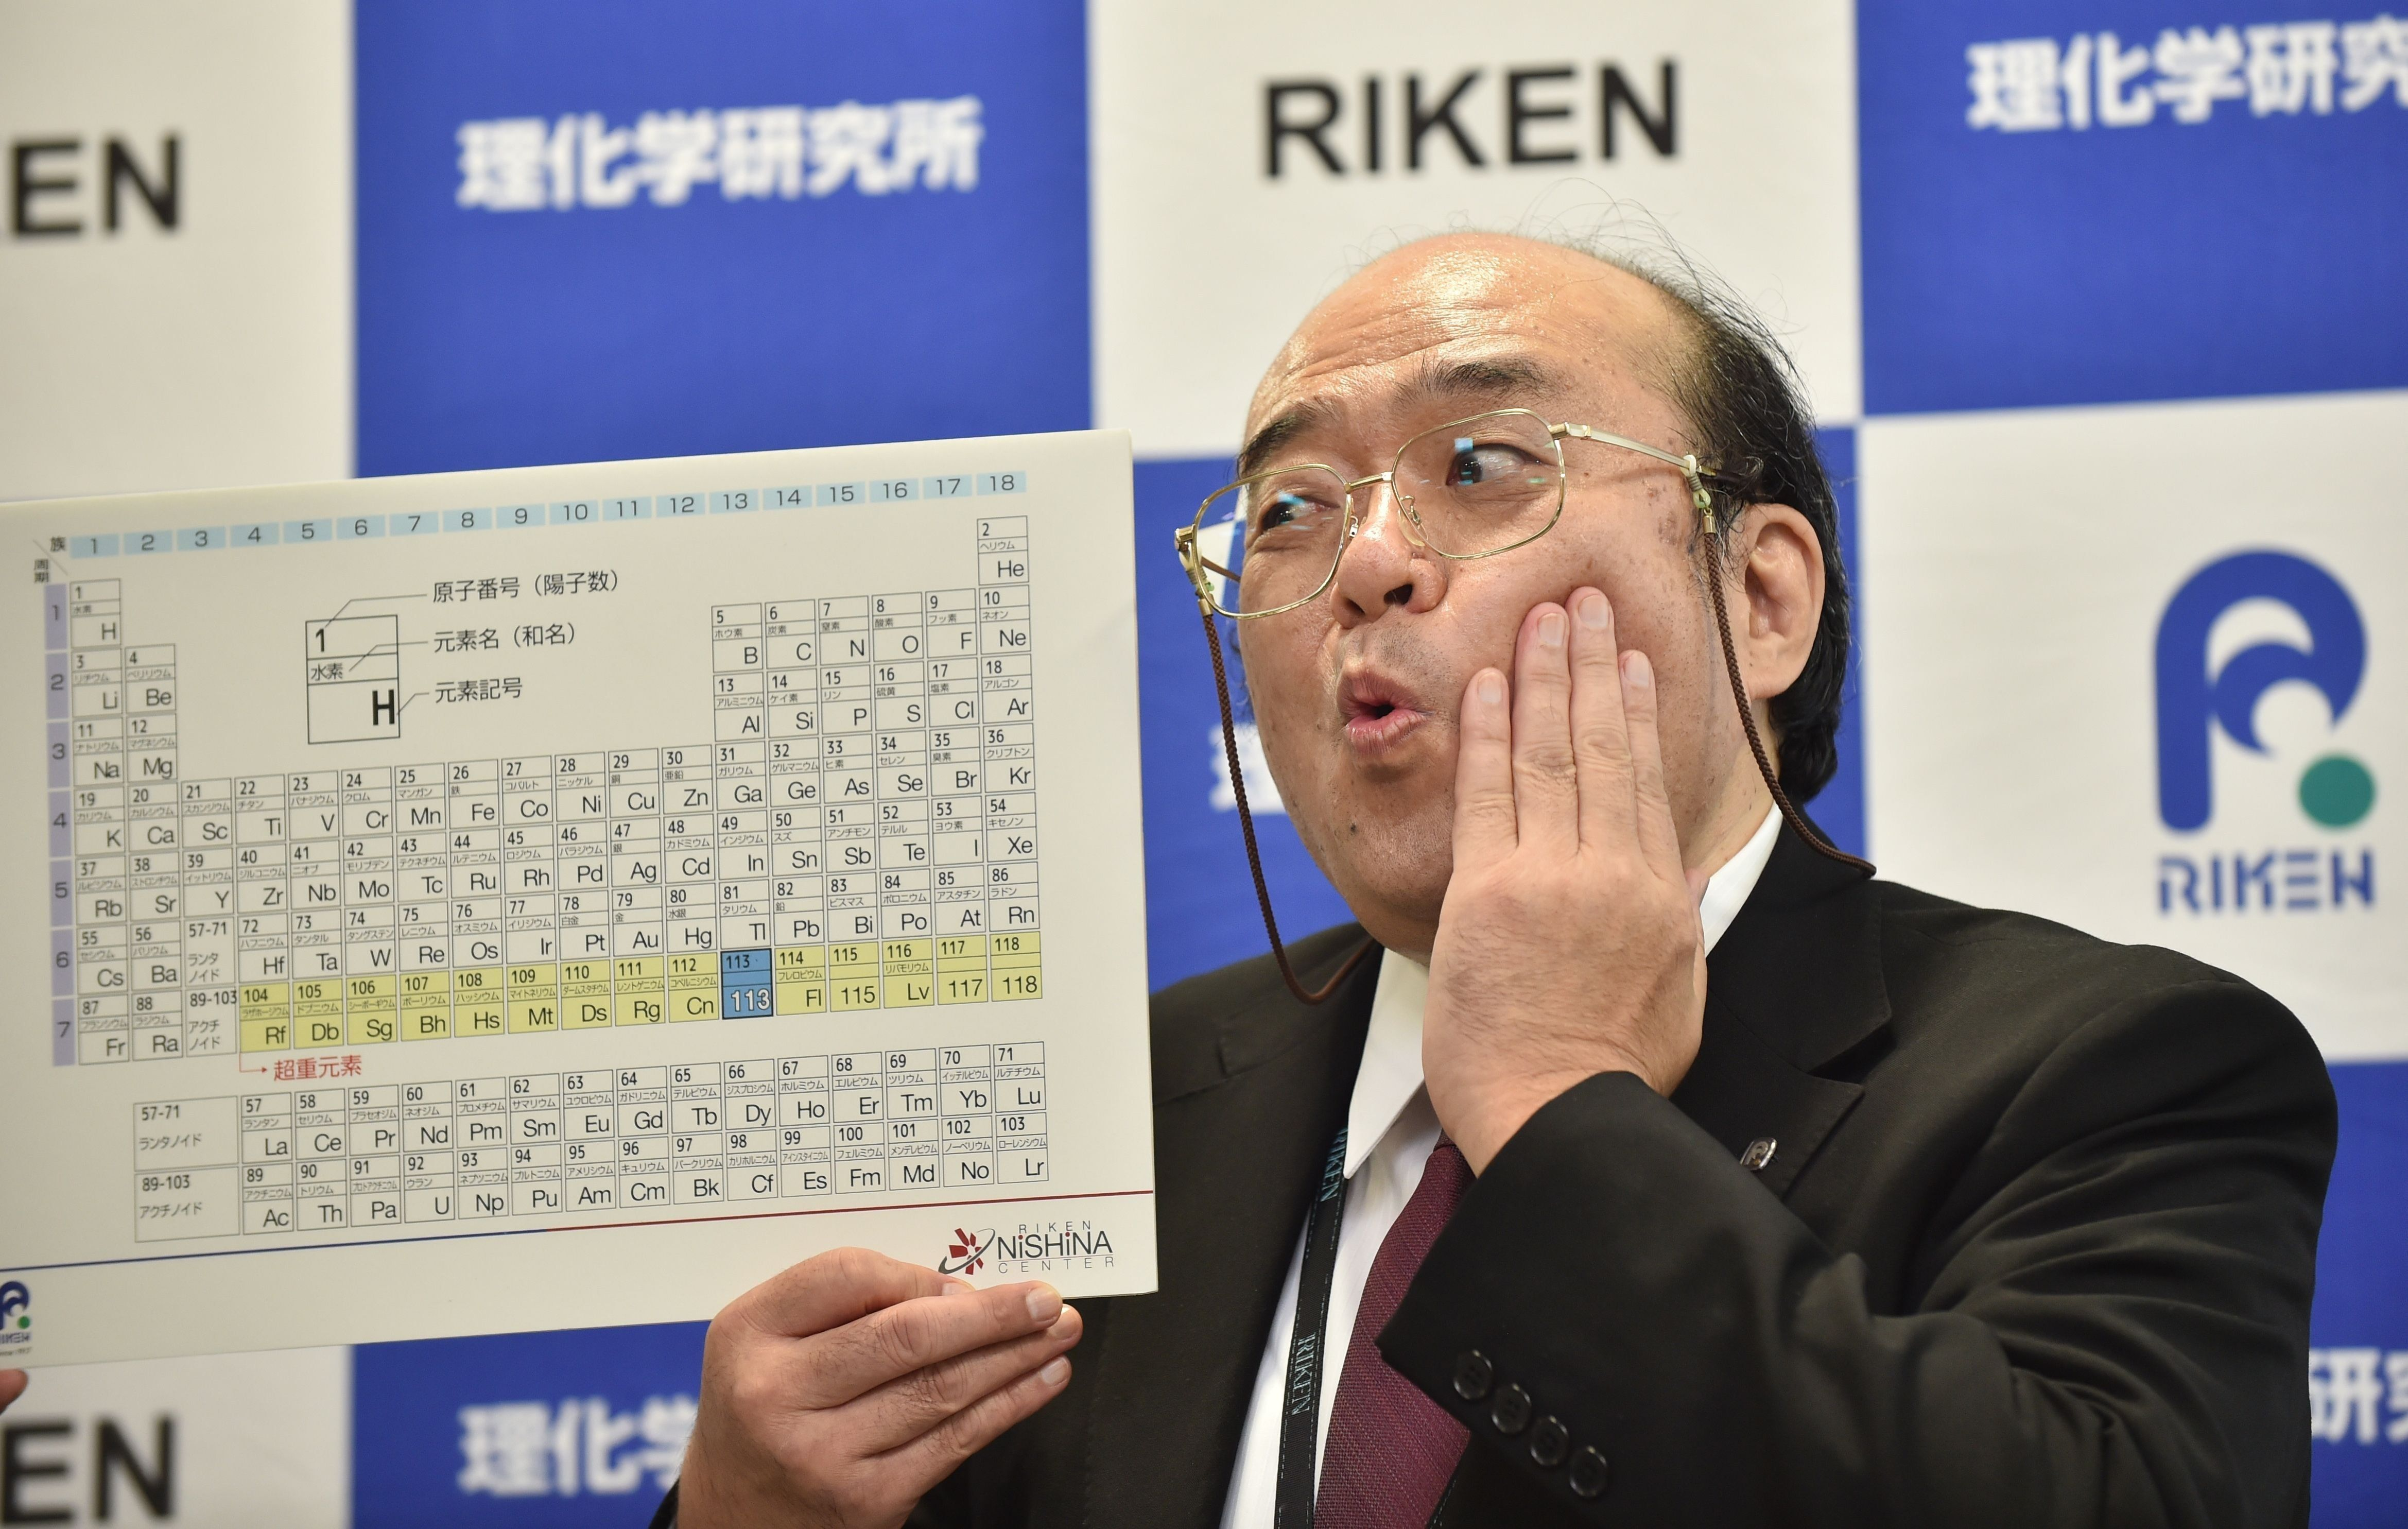 Kosuke Morita, the leader of the Riken team, poses with a board displaying the new atomic element 113 during a press conference in Wako, Saitama prefecture on December 31, 2015. A Japanese research team has received naming rights for new atomic element 113, the first on the periodic chart to be named by Asian scientists, the team's institute said December 31. Japan's Riken Institute said a team led by Kosuke Morita was awarded the rights from global scientific bodies -- the International Union of Pure and Applied Chemistry (IUPAC) and the International Union of Pure and Applied Physics (IUPAP) -- after successfully creating the new synthetic element three times from 2004 to 2012. AFP PHOTO / KAZUHIRO NOGI / AFP / KAZUHIRO NOGI        (Photo credit should read KAZUHIRO NOGI/AFP/Getty Images)